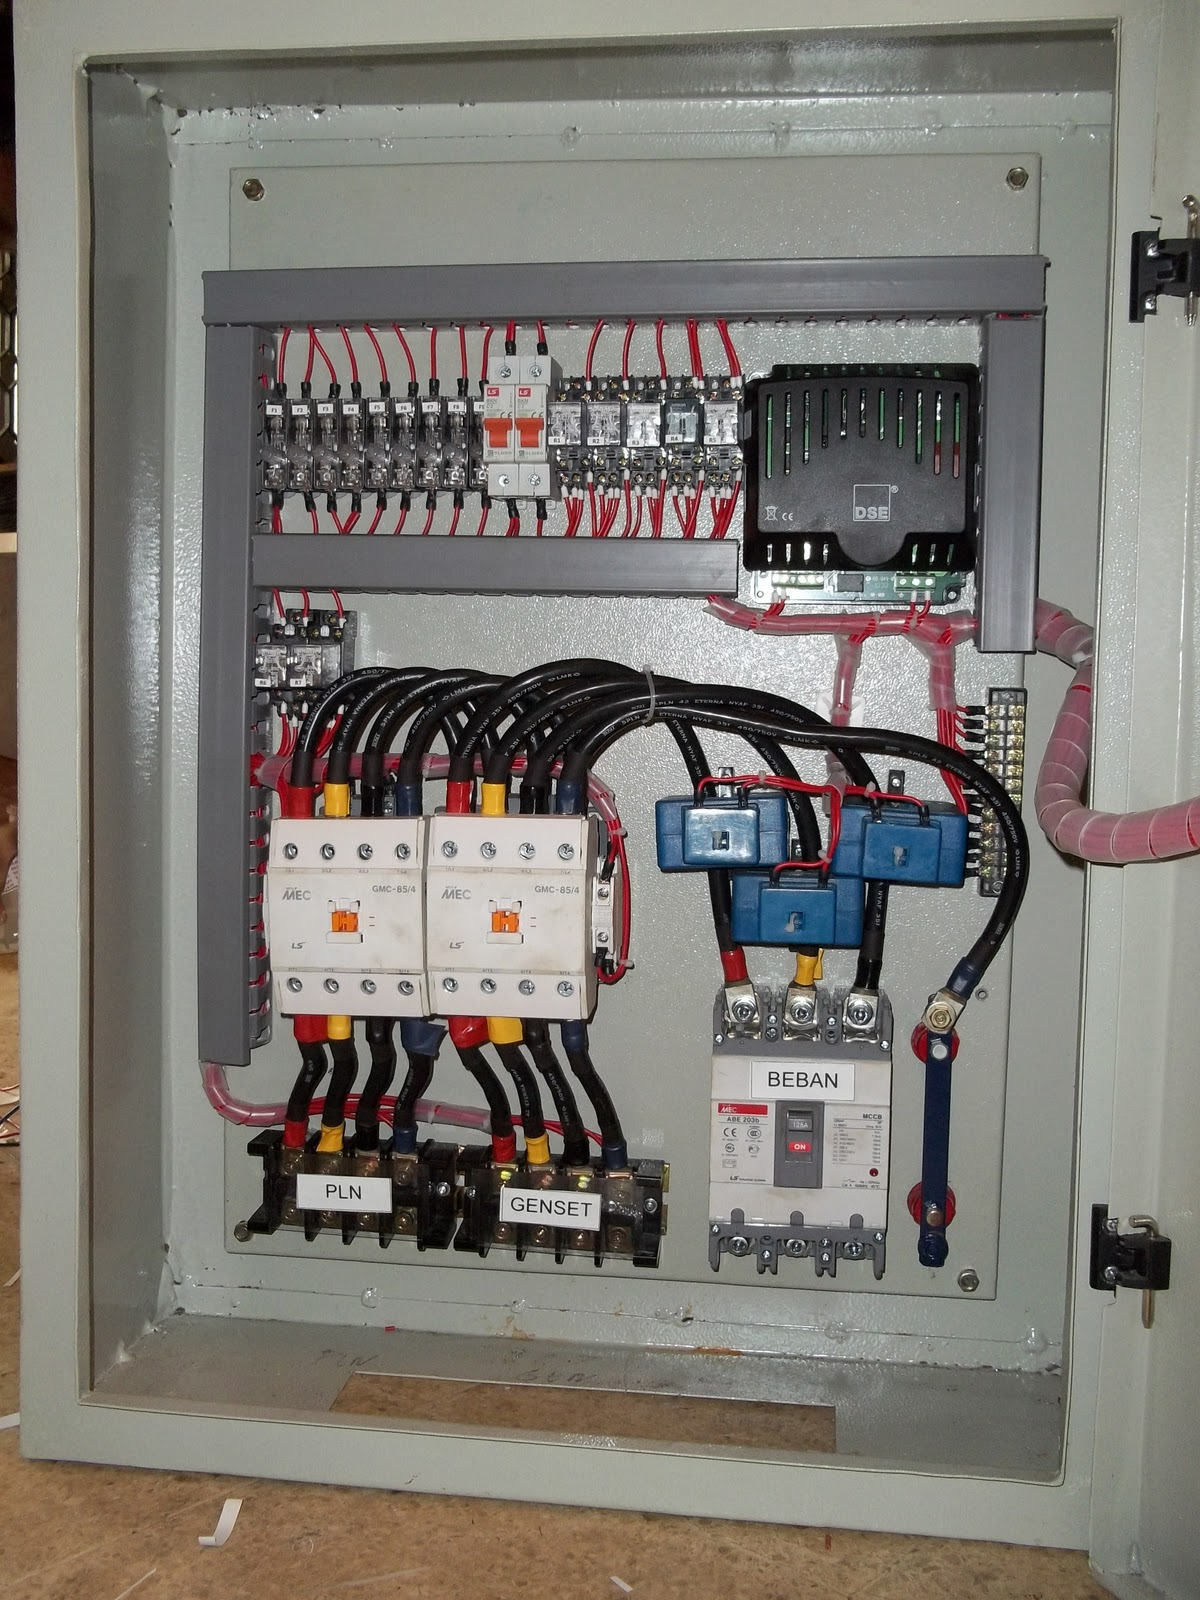 Wiring panel amf dan ats wire center amf ats sentra daya abadi rh sentradayaabadi01 blogspot com wiring a main panel generator transfer switch wiring diagram asfbconference2016 Choice Image